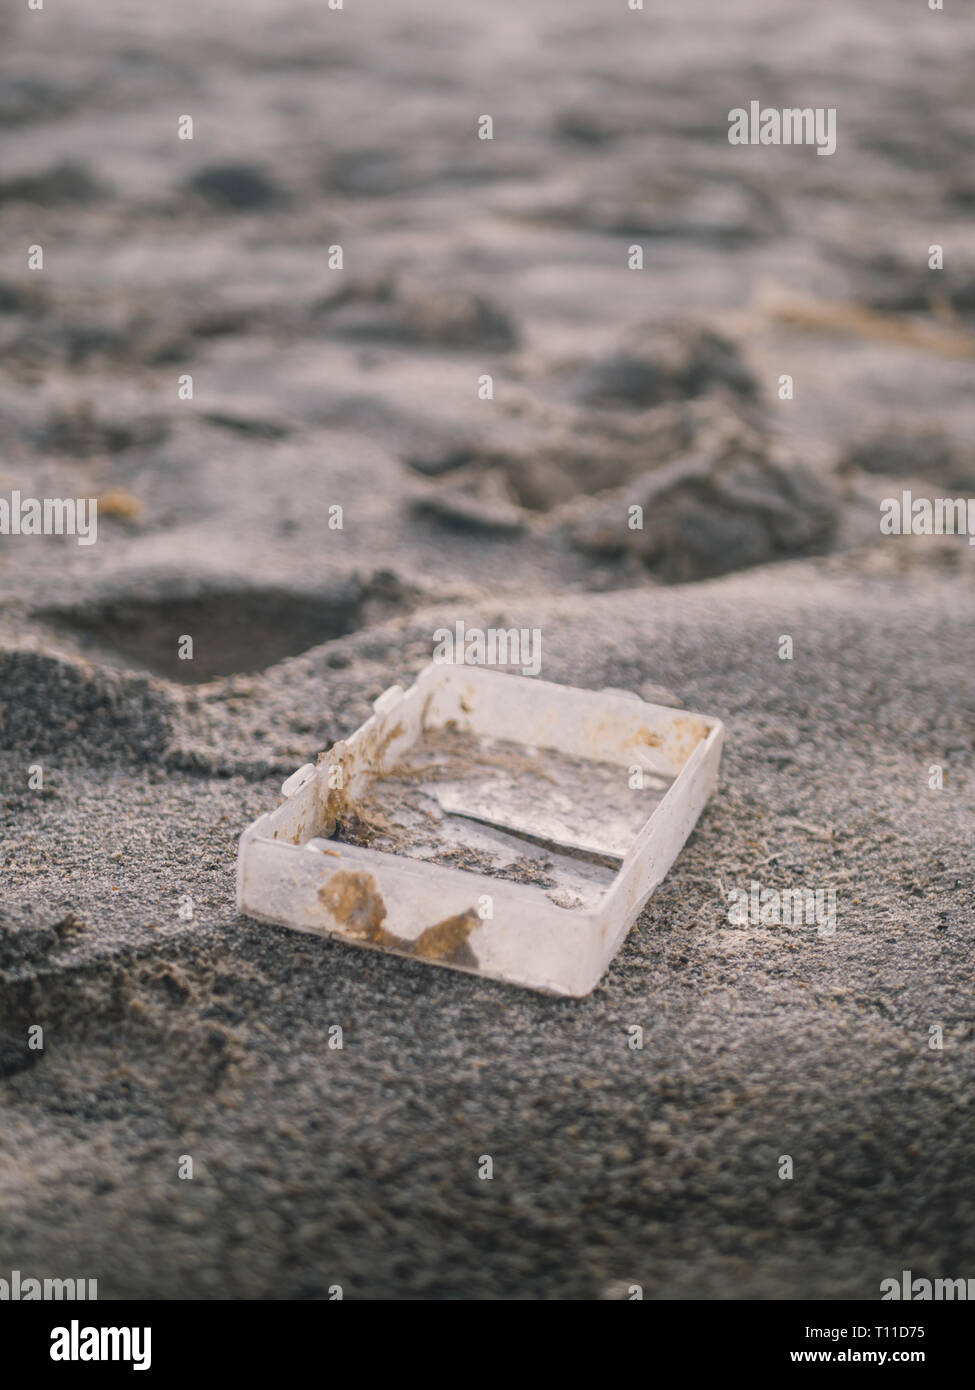 Beach Plastic Pollution - Stock Image